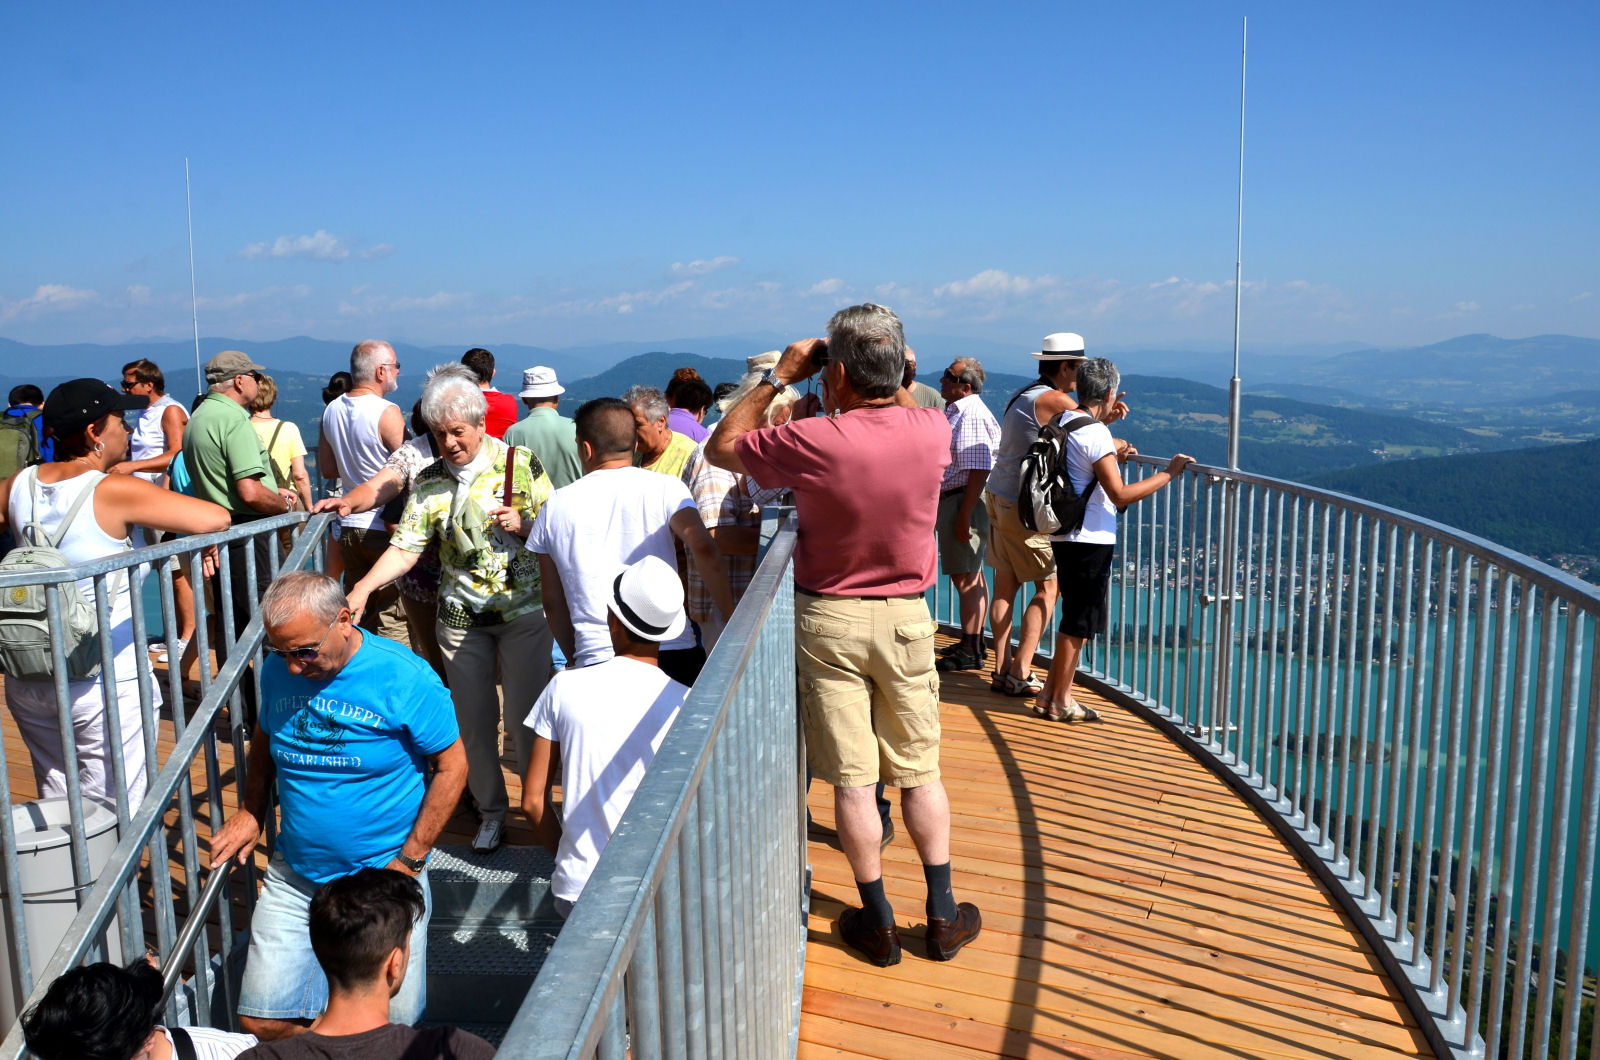 Pyramidenkogel Observation Tower is one of the most visited tourist attraction in Austria